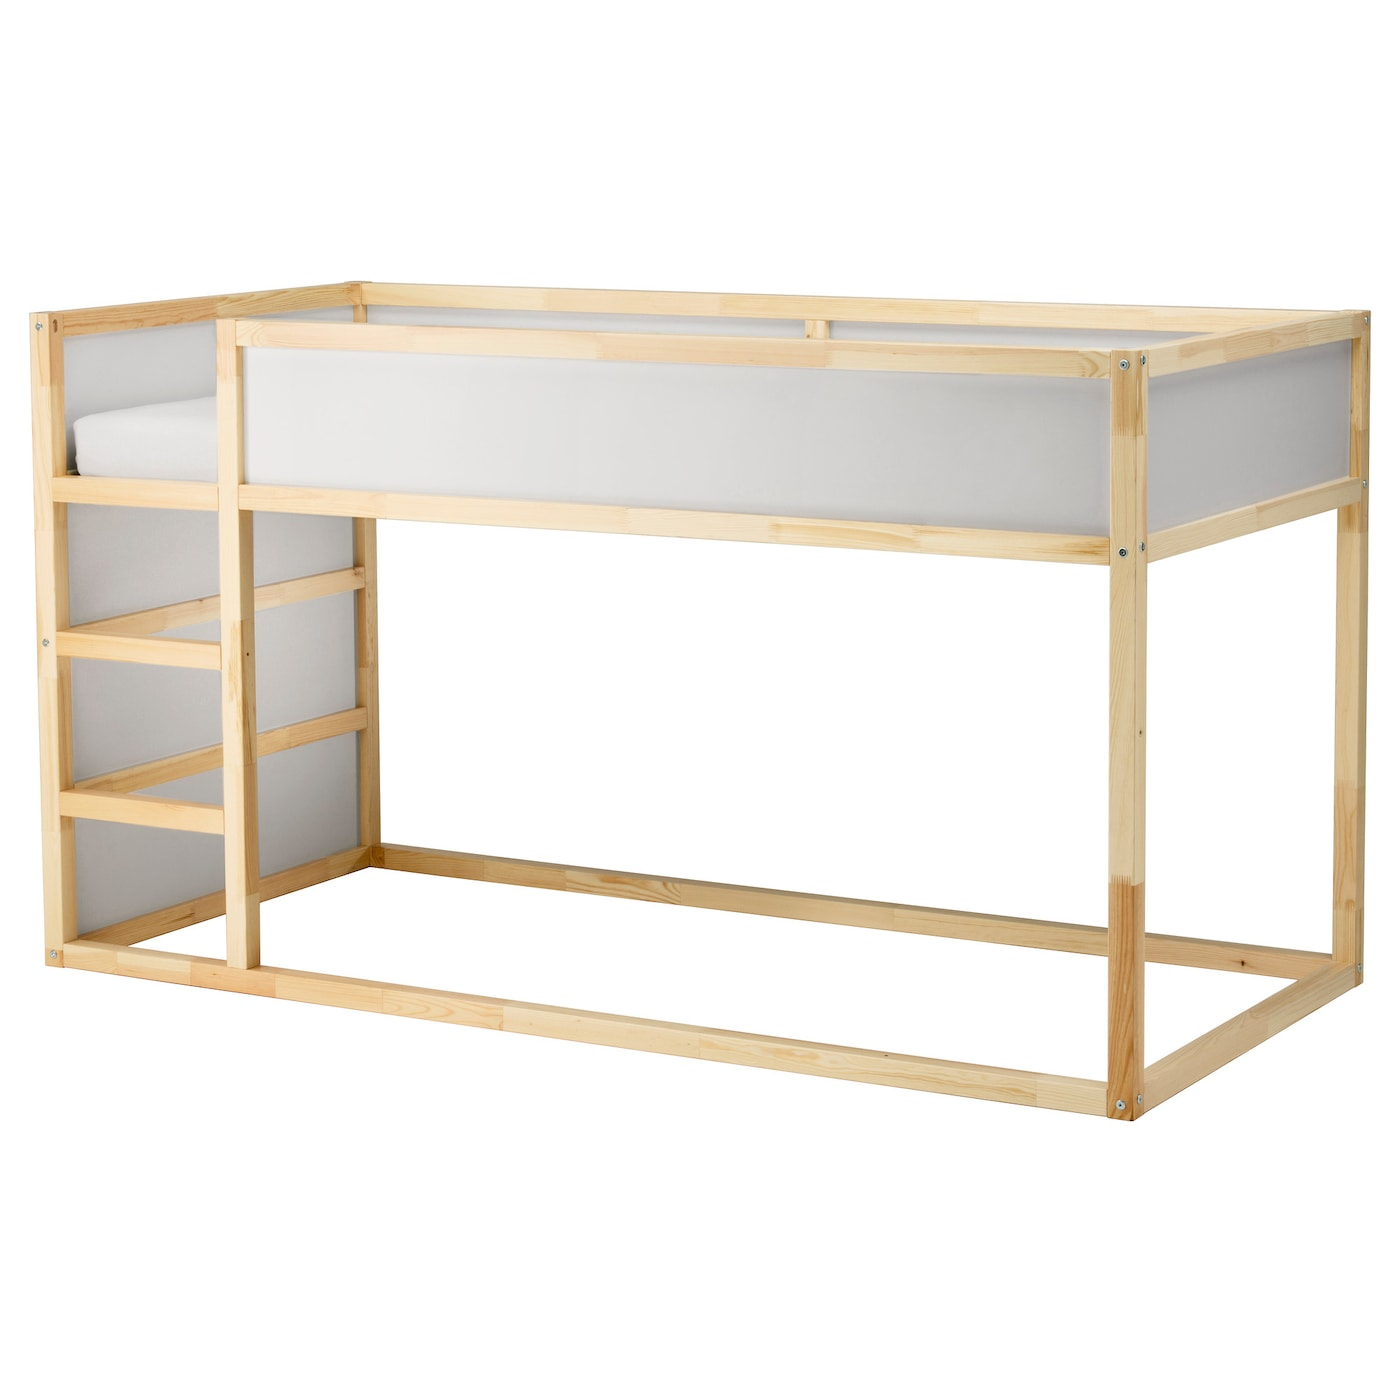 Home images ikea kura bed ikea kura bed facebook twitter google - Ikea Kura Reversible Bed Turned Upside Down The Bed Quickly Converts From A Low To A